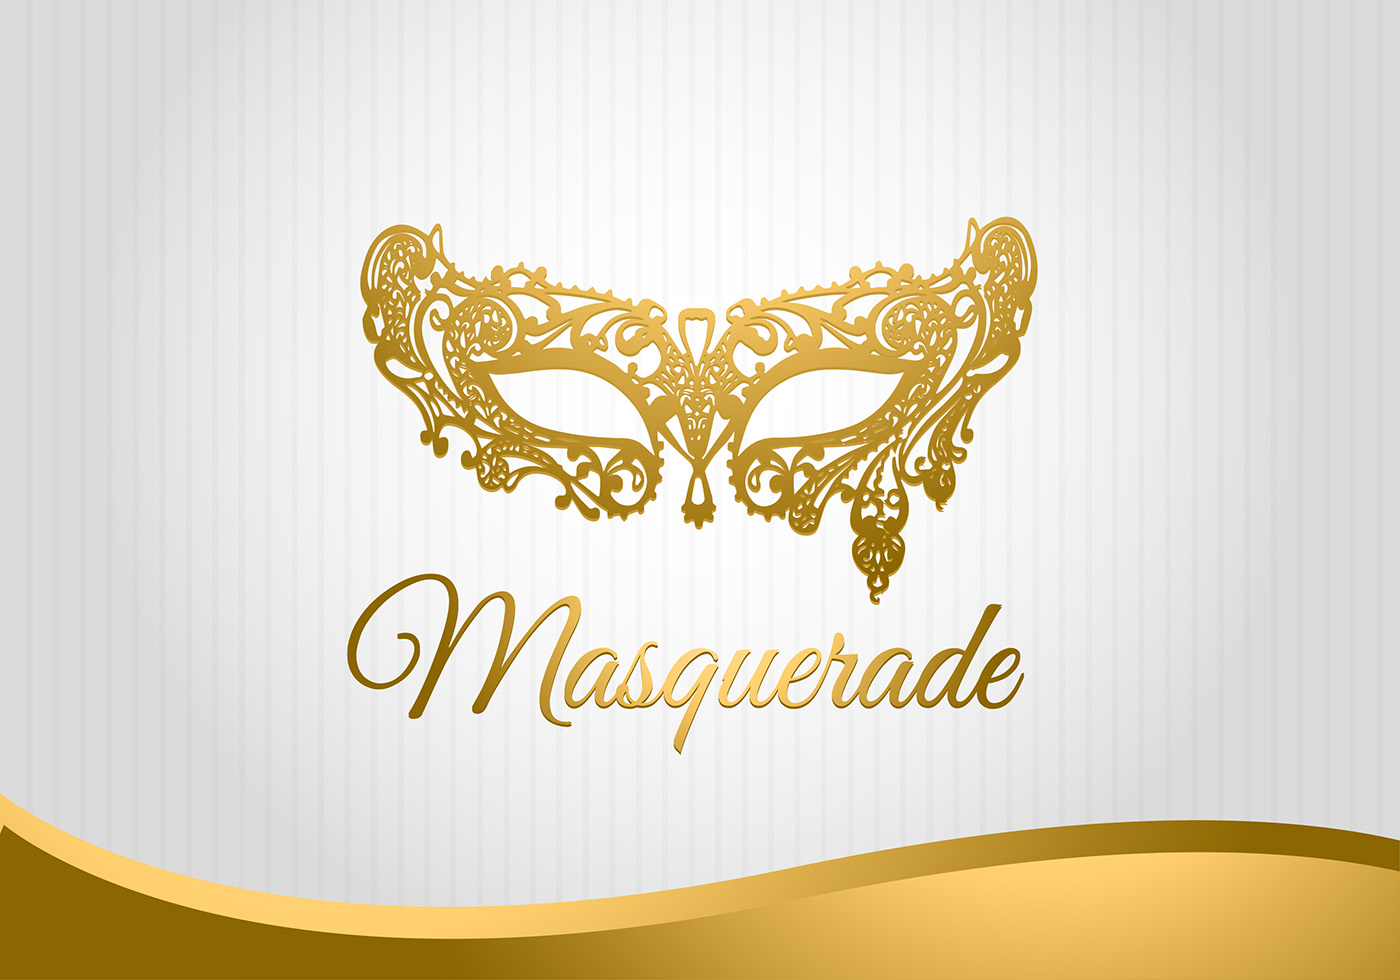 Masquerade Mask Background Vector - Download Free Vectors ...  Masquerade Mask Vector